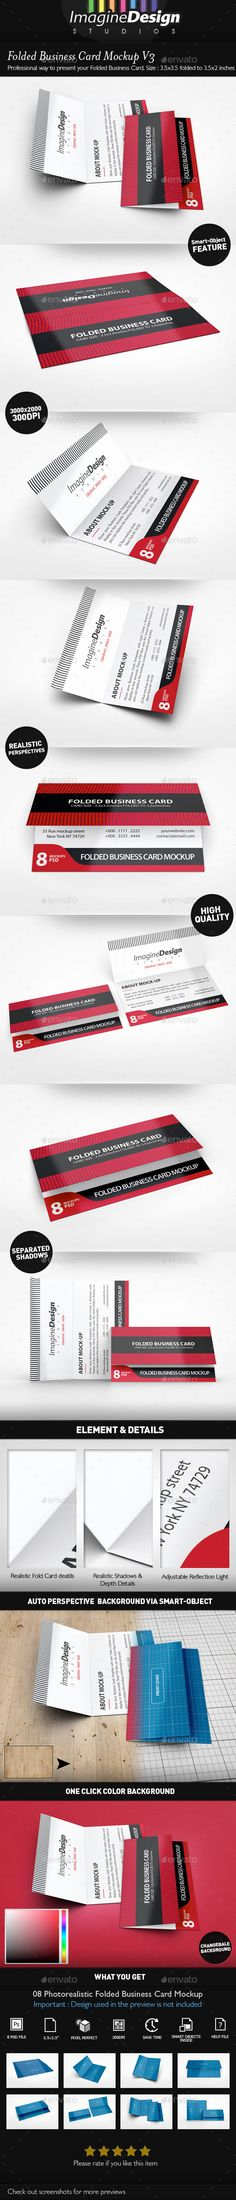 Rounded Corners Realistic Vintage Business Card Mockups | Mockup ...